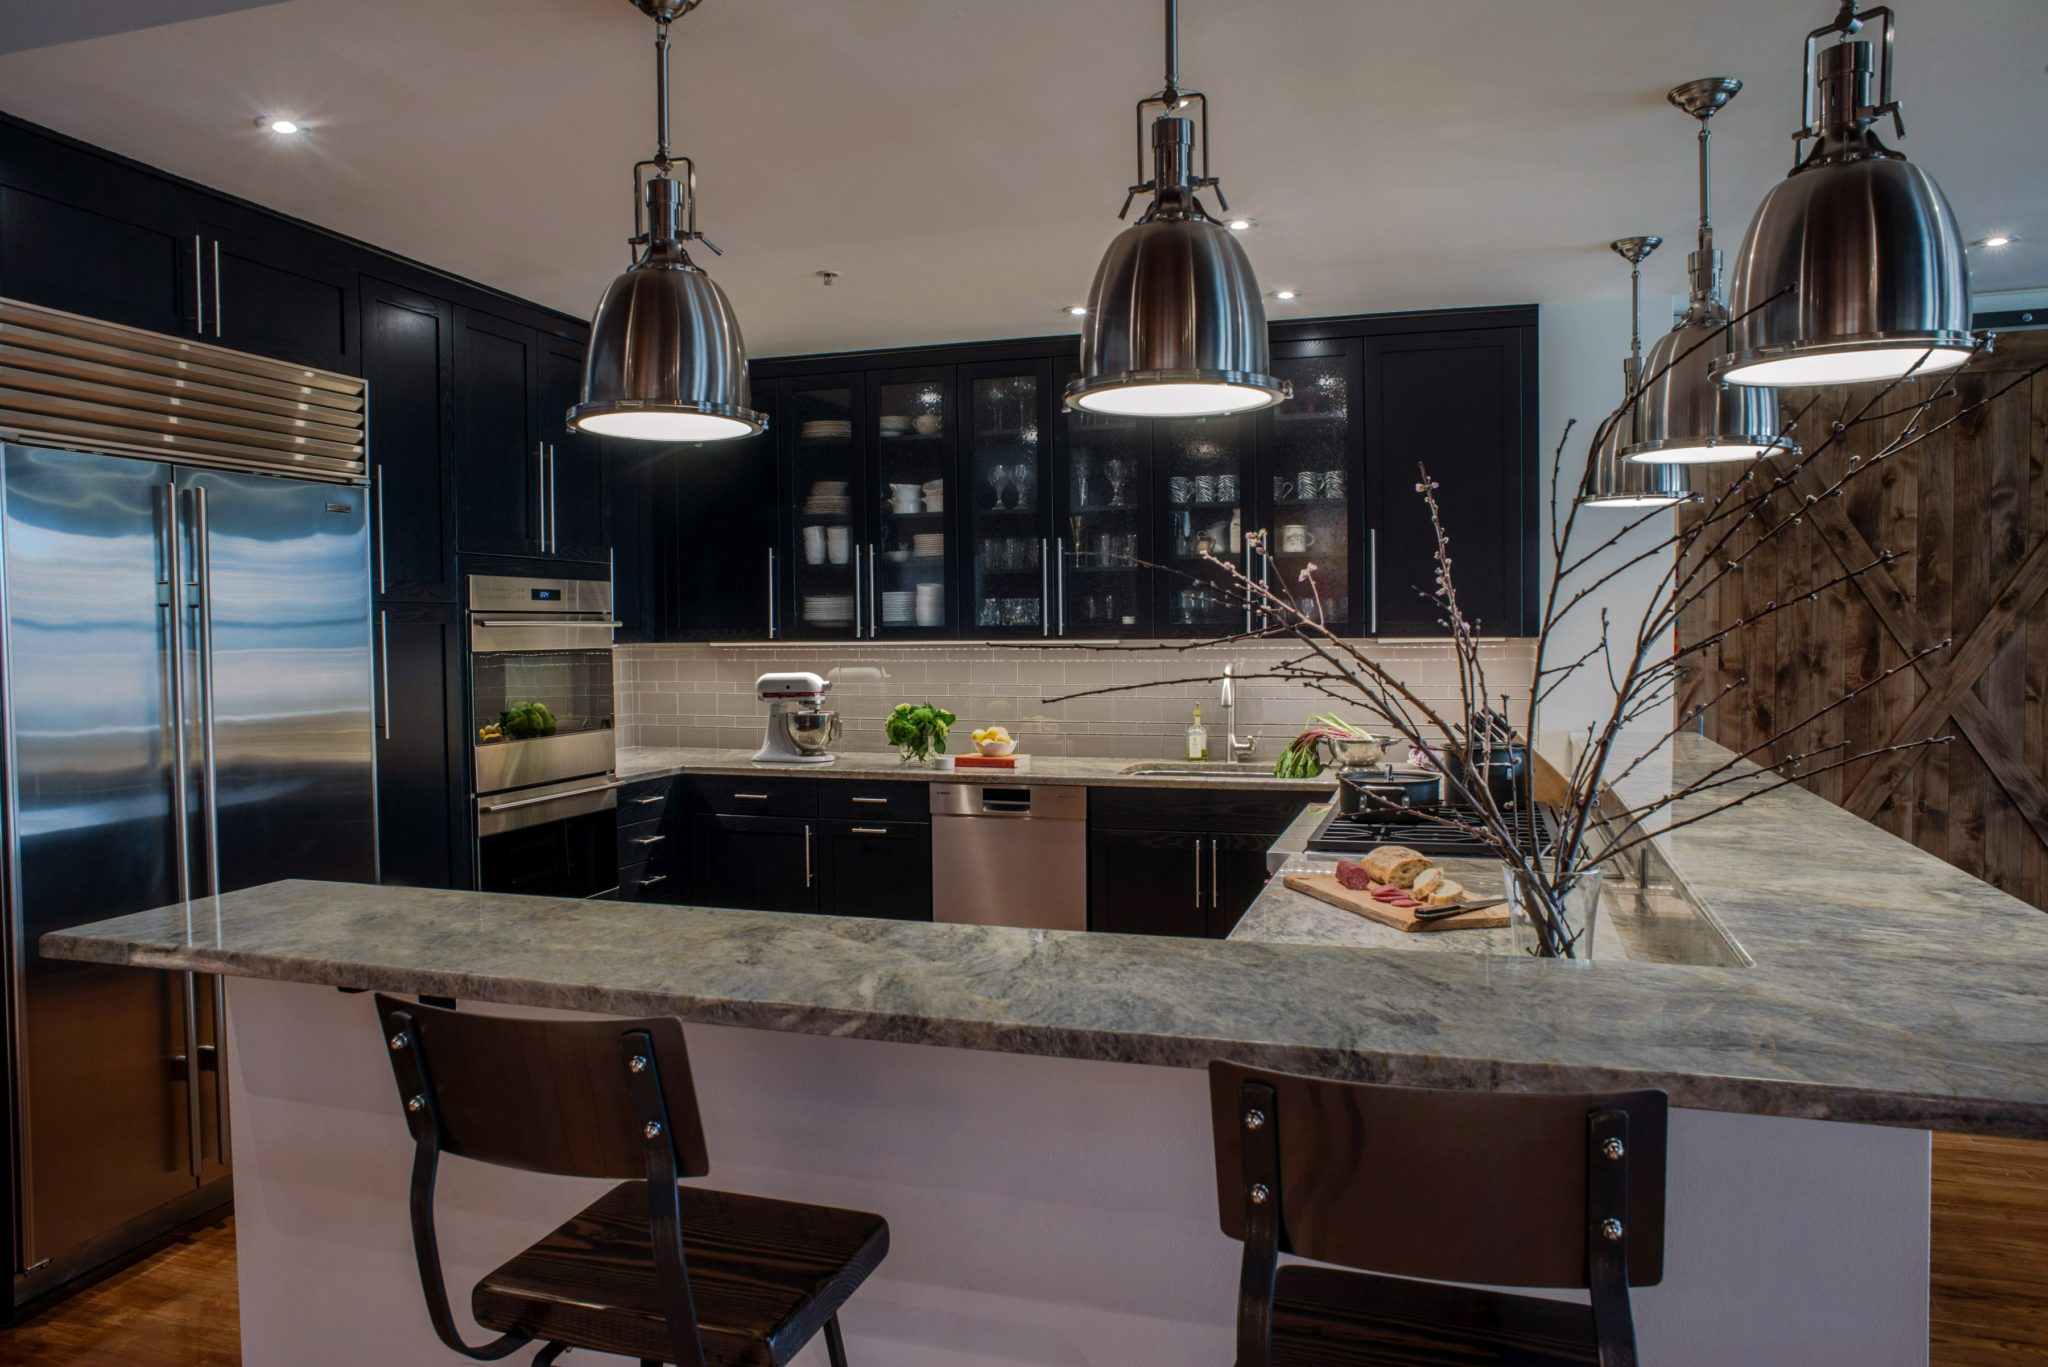 Contemporary Kitchen with Black Cabinetry and Industrial Touches by Michele Plachter Design